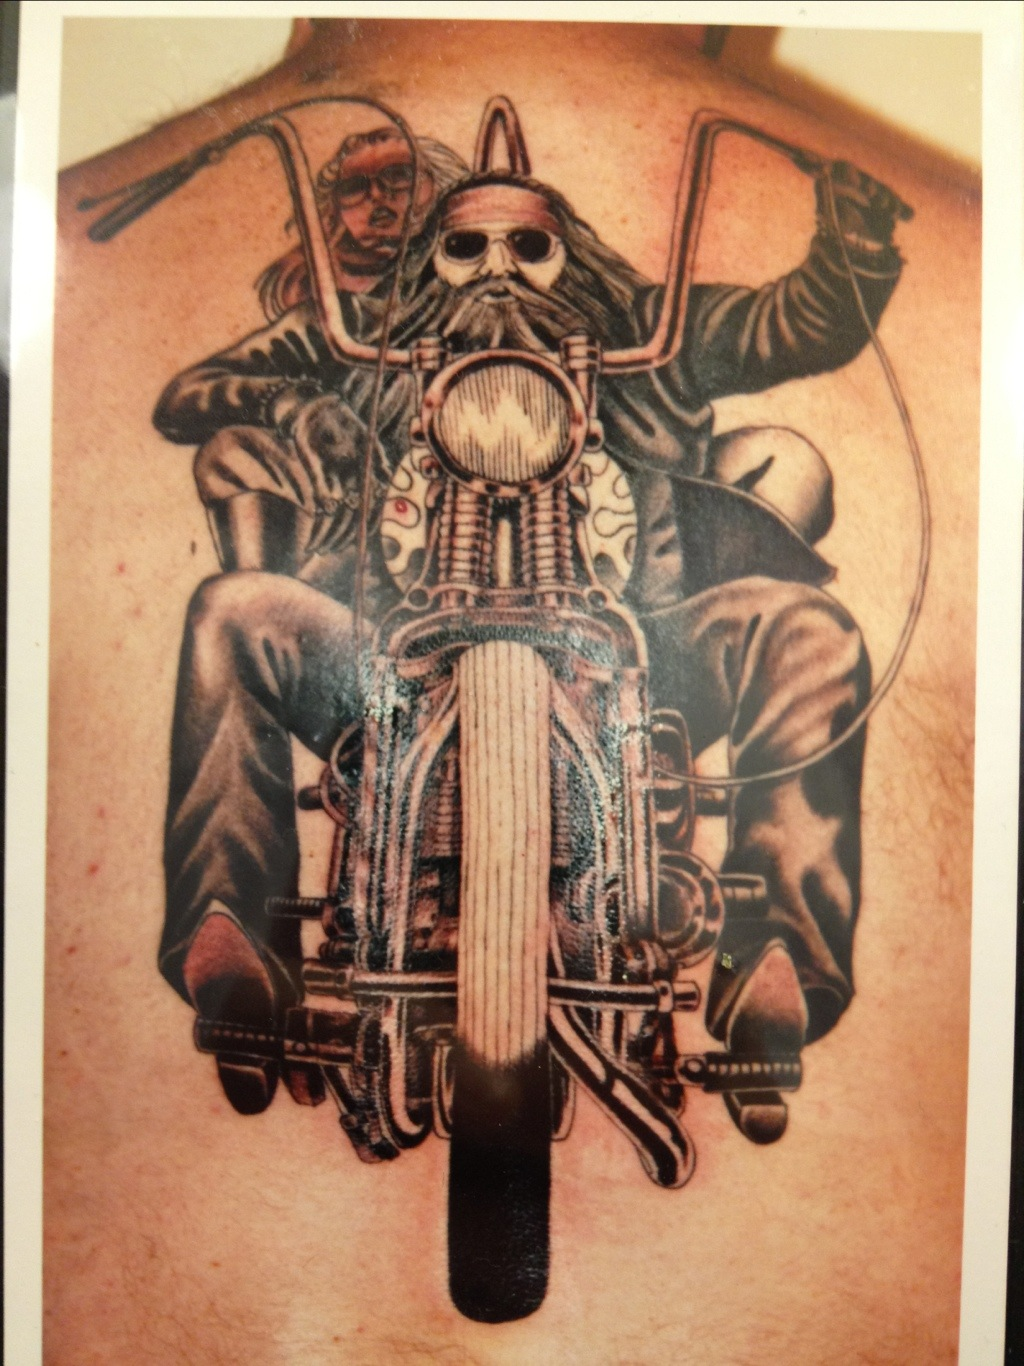 gombal tattoo designs biker tattoos designs biker tattoos idea. Black Bedroom Furniture Sets. Home Design Ideas